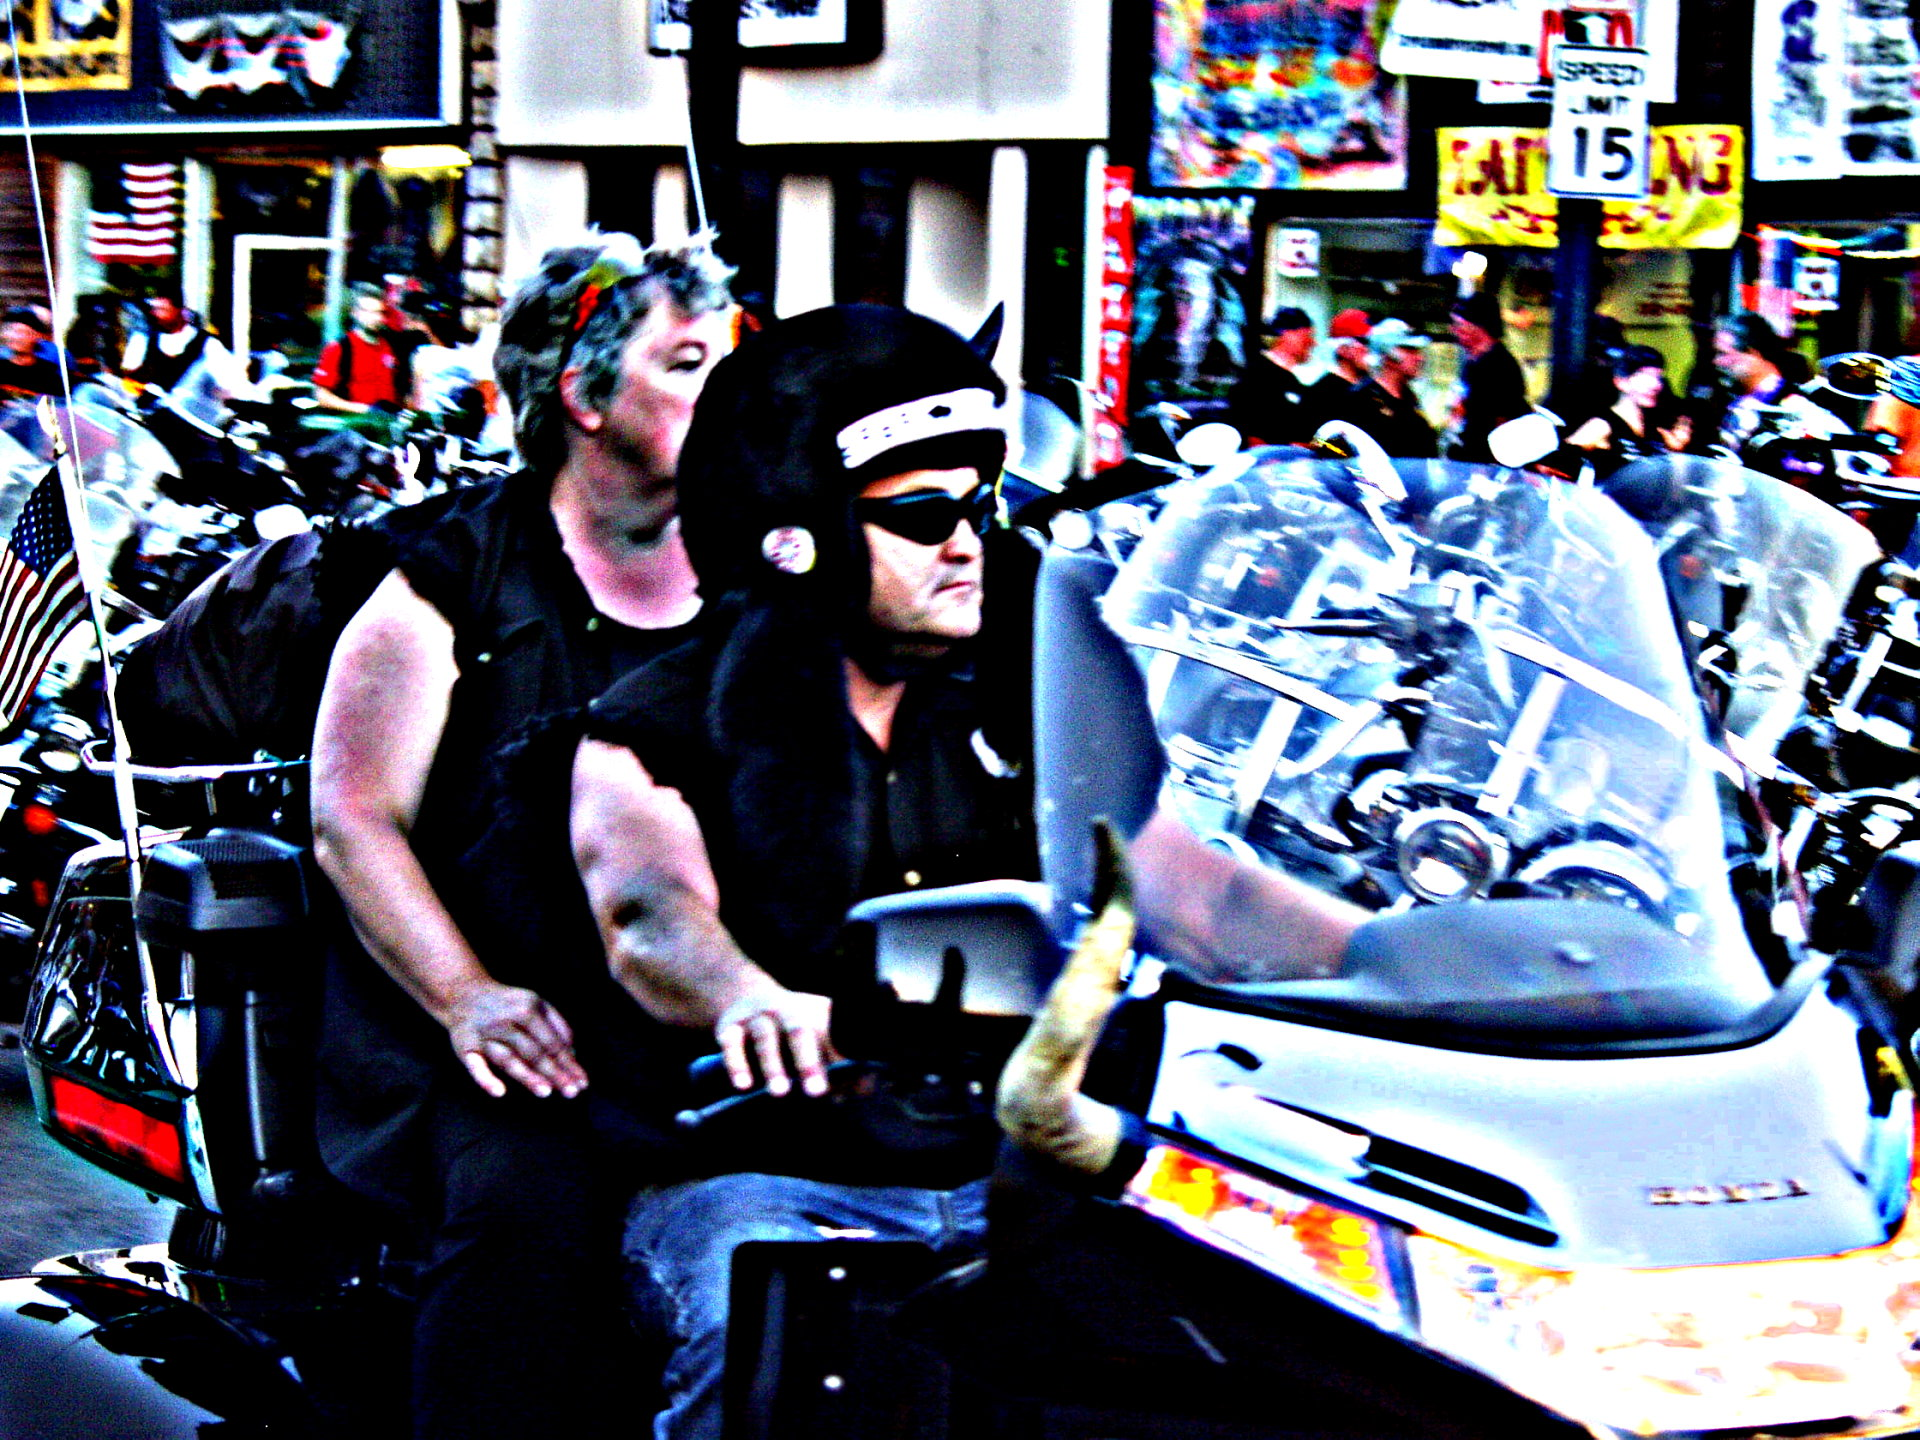 Buffalo hat bikers